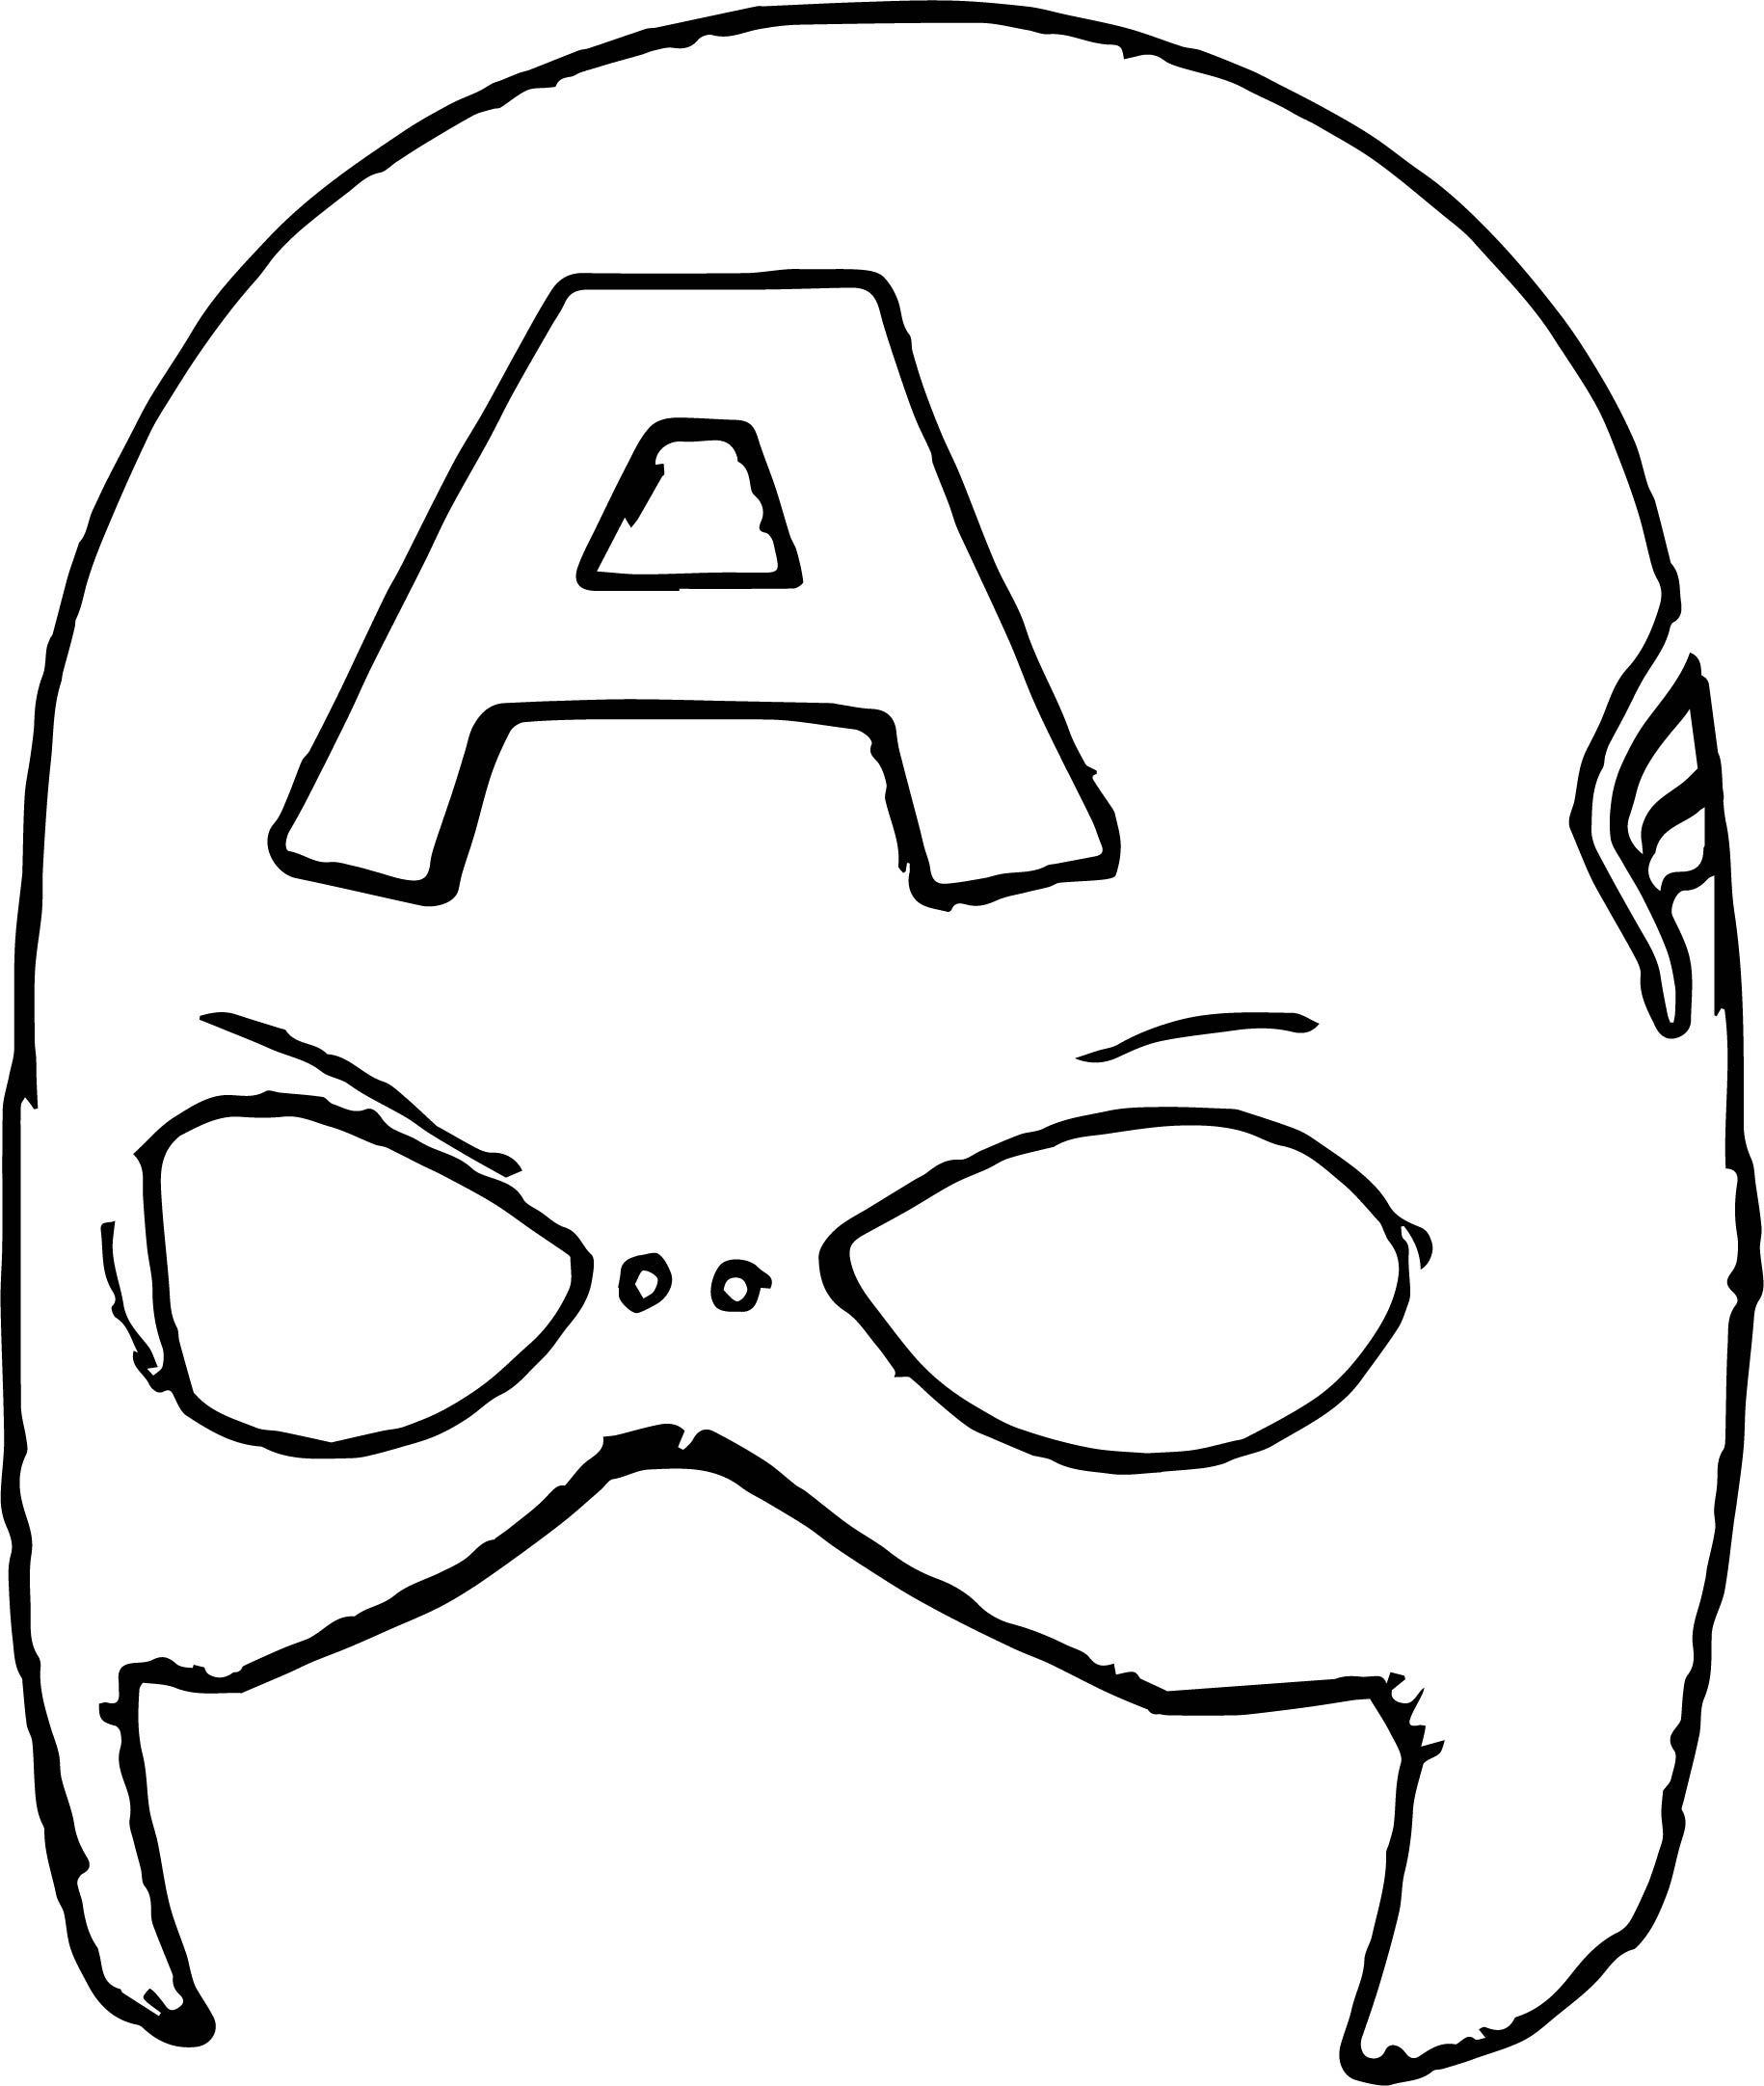 Captain America Mask Coloring Pages Sketch Coloring Page